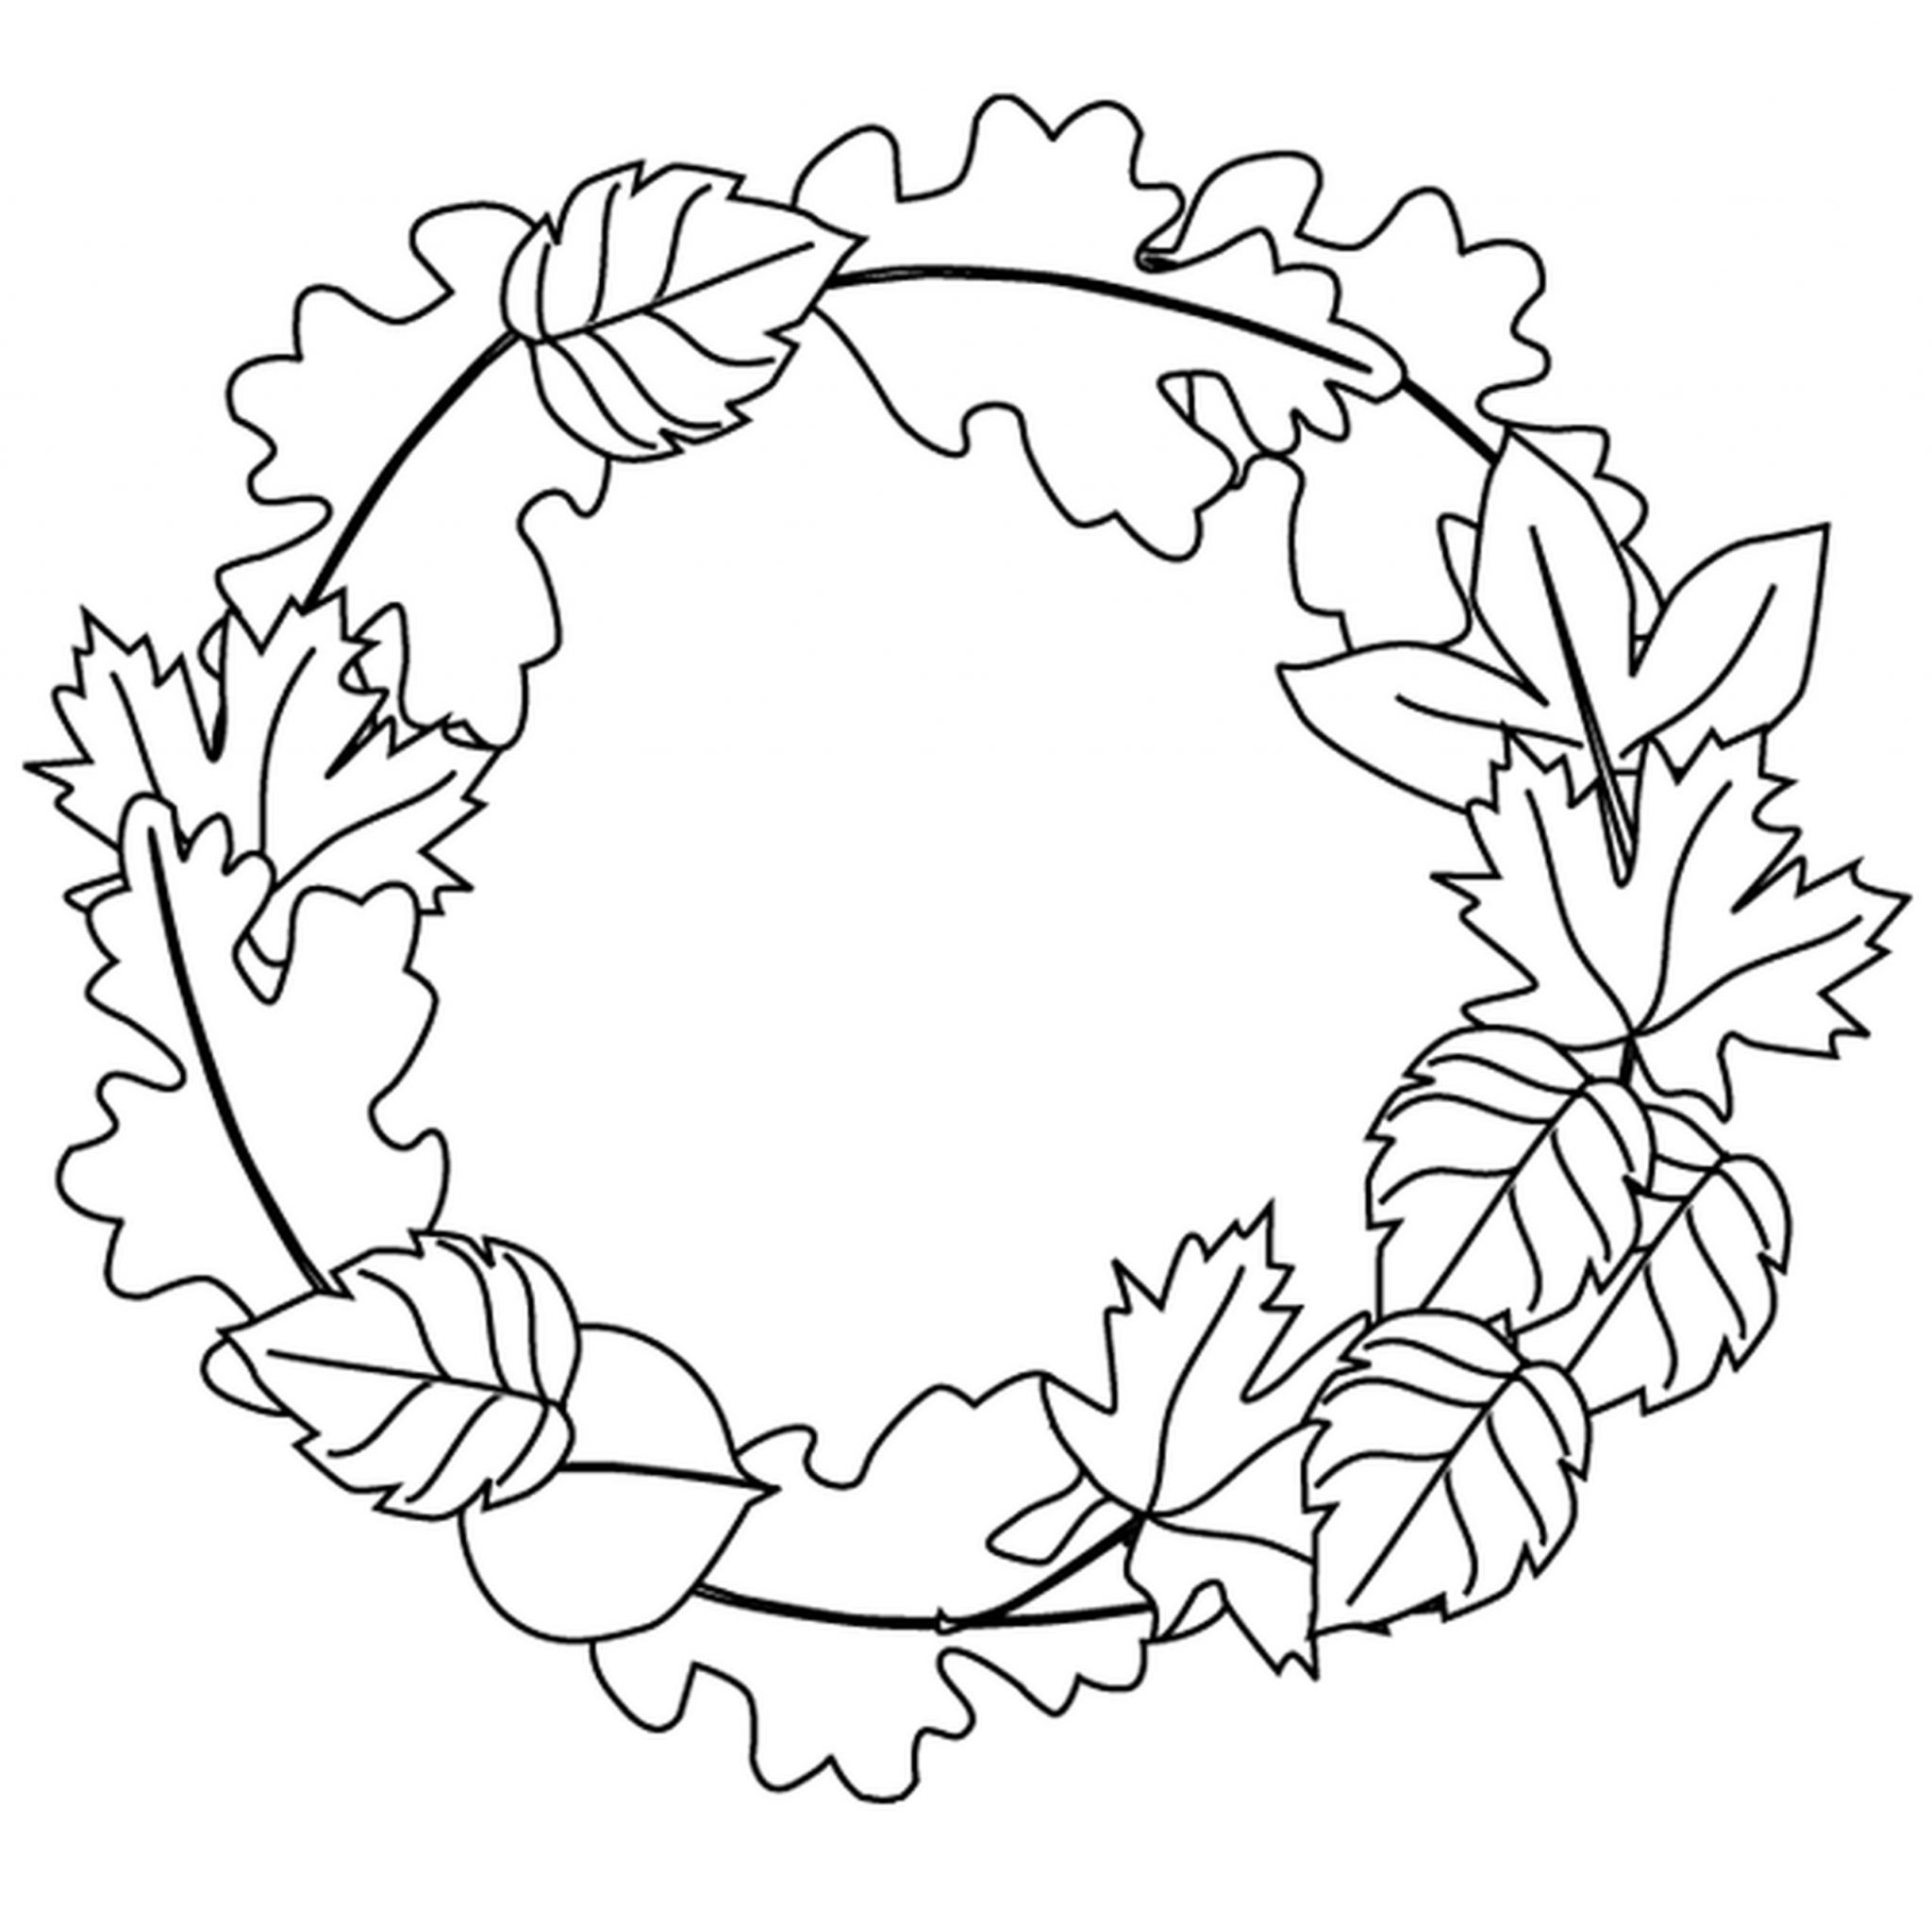 coloring pages leaves fall easy preschool fall leaves coloring pages leaves pages coloring fall